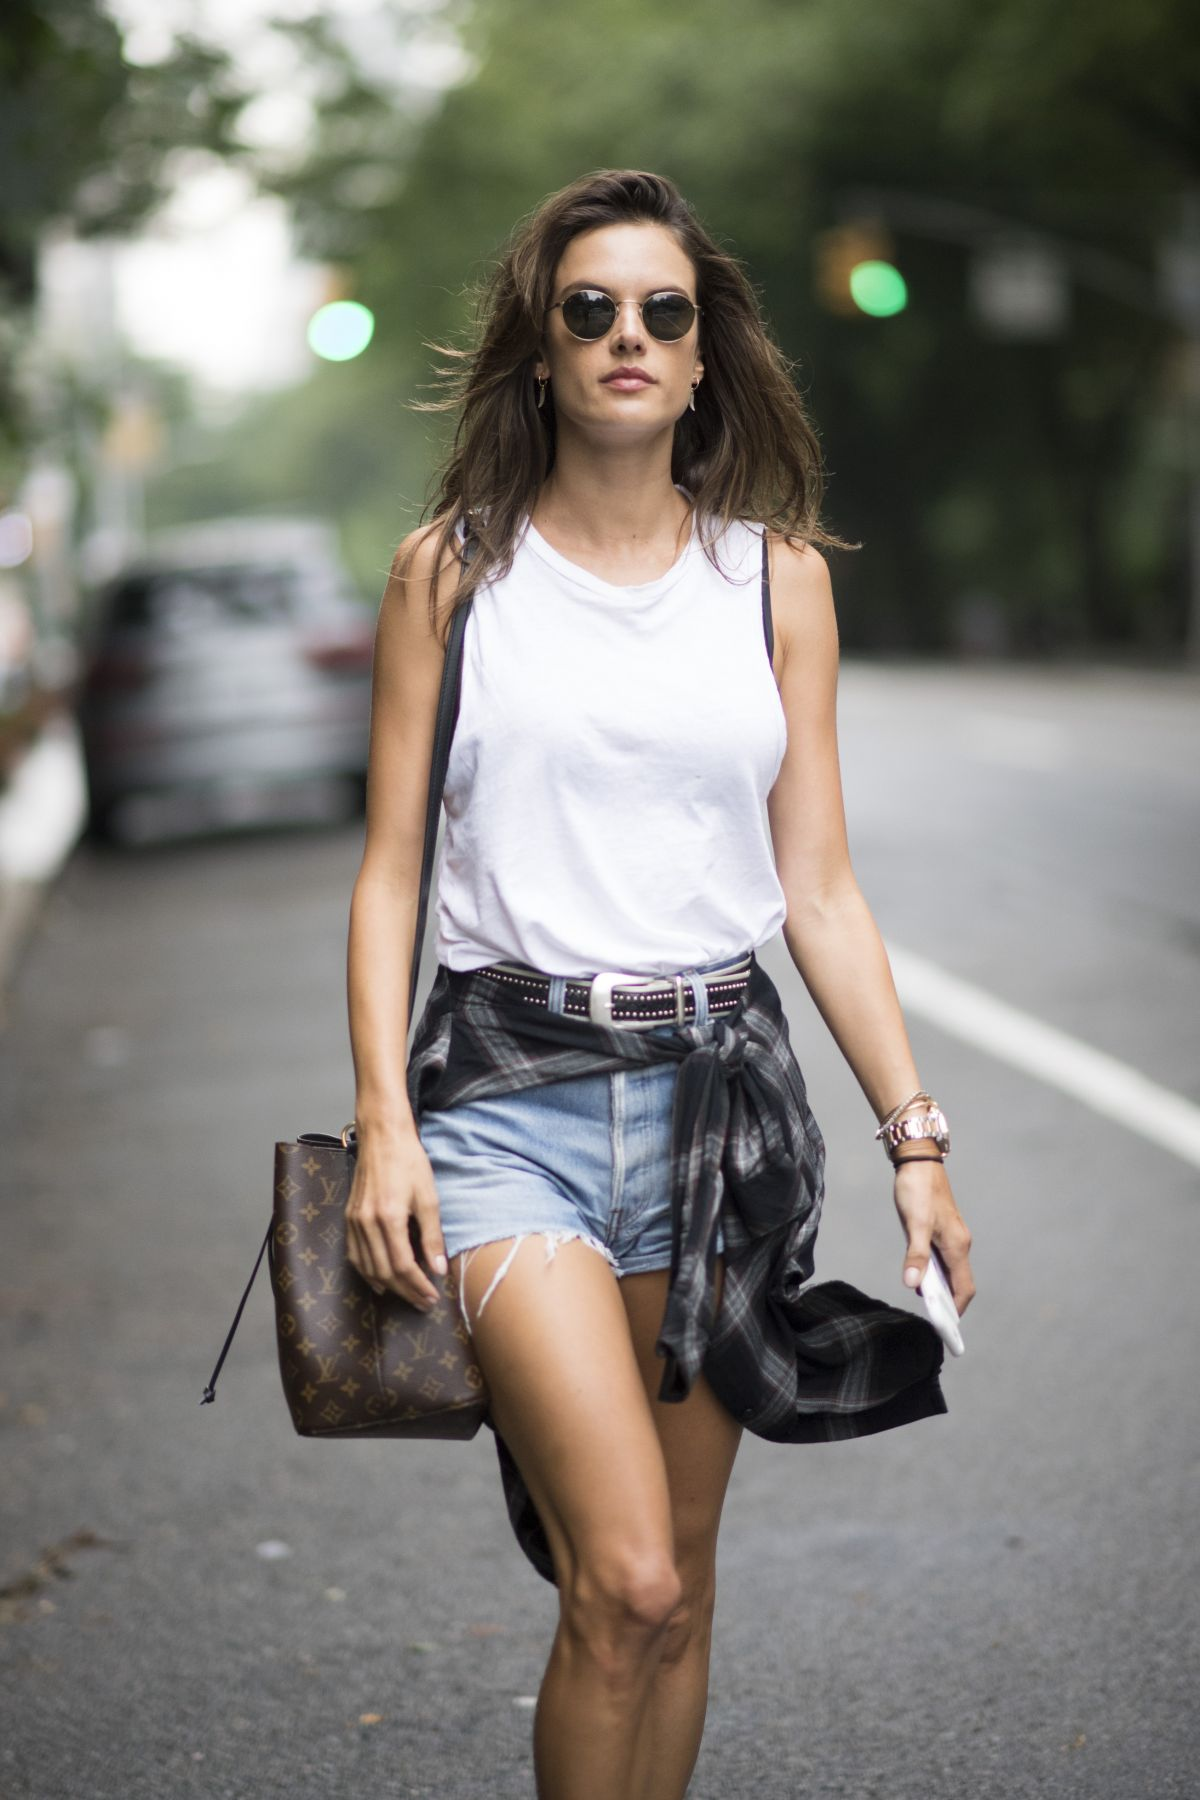 Alessandra Ambrosio Seen in the streets of Manhattan